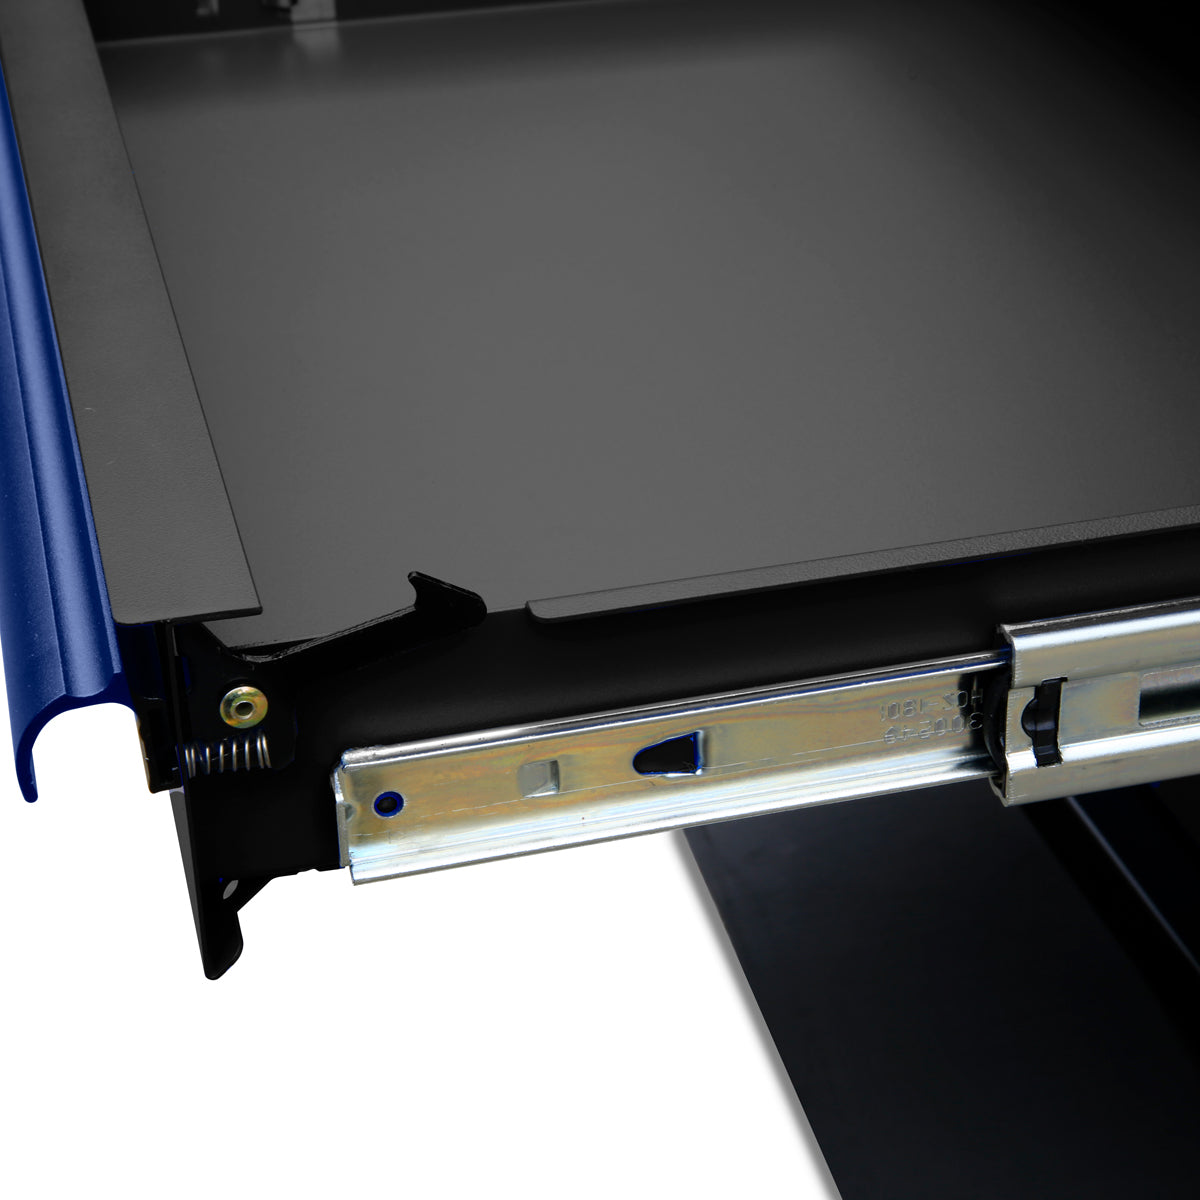 Montezuma Garage Storage System: Ball bearing drawer slides